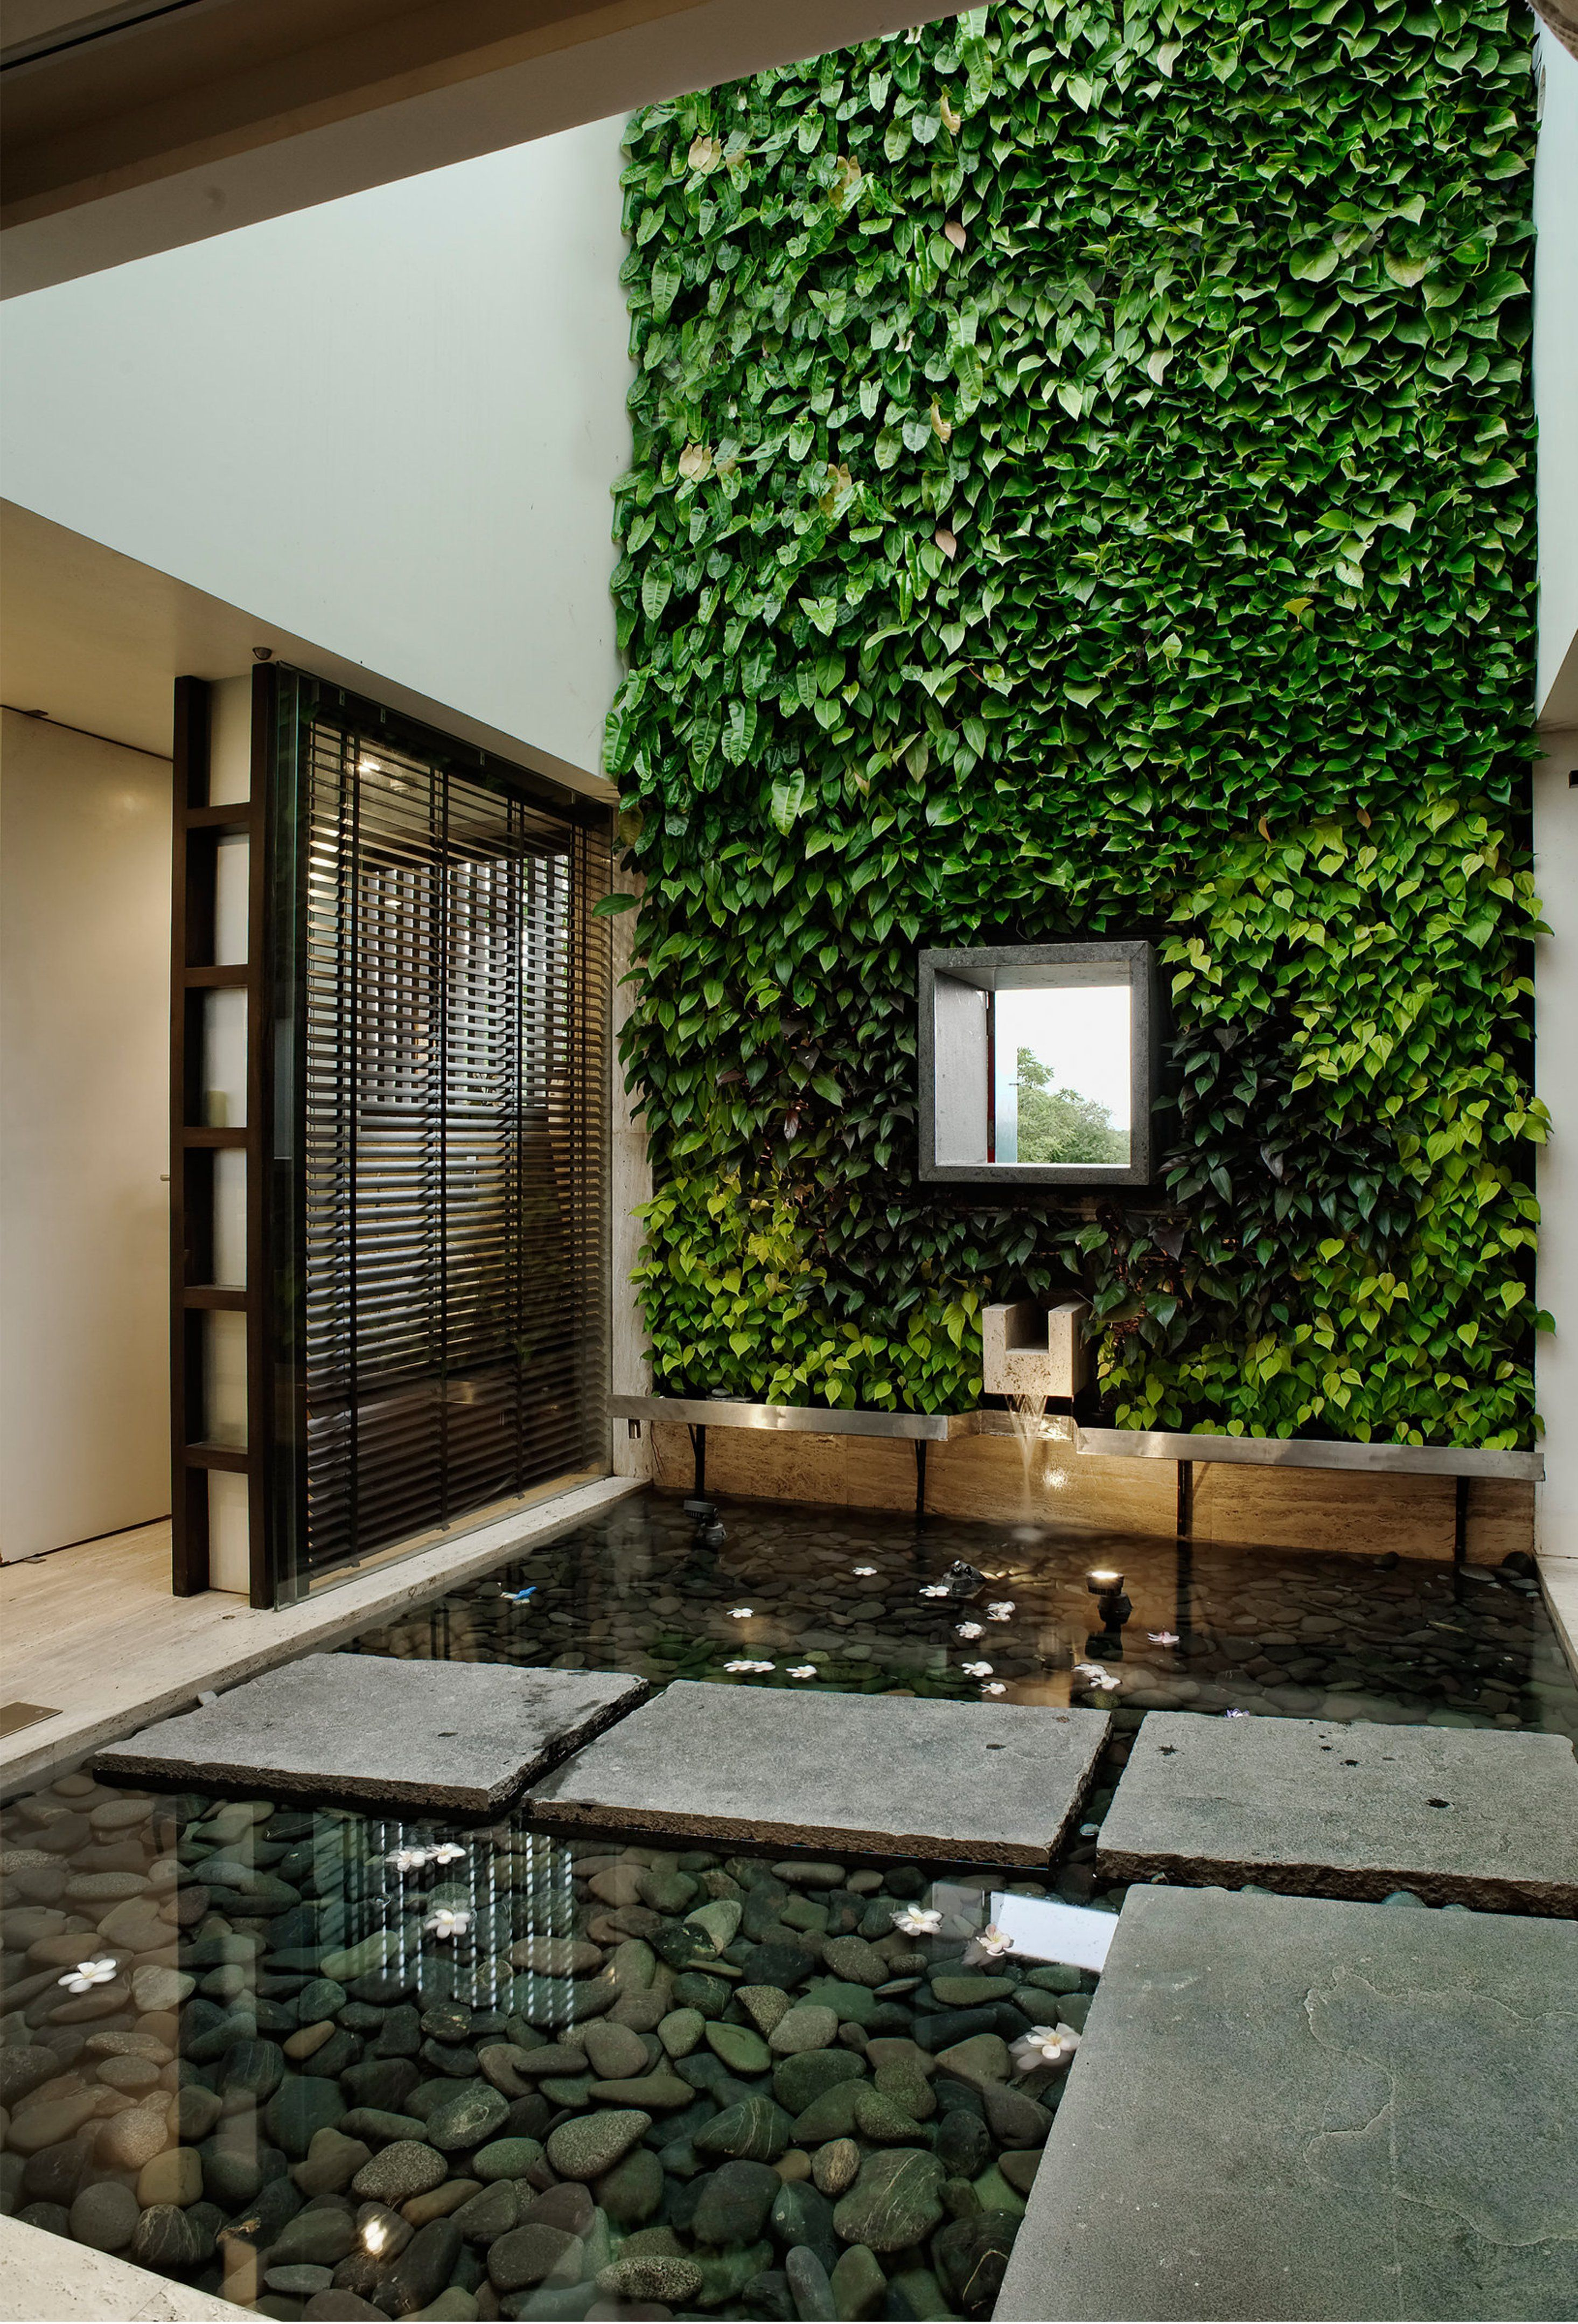 The Courtyard Is Treated With A Full Green Wall With